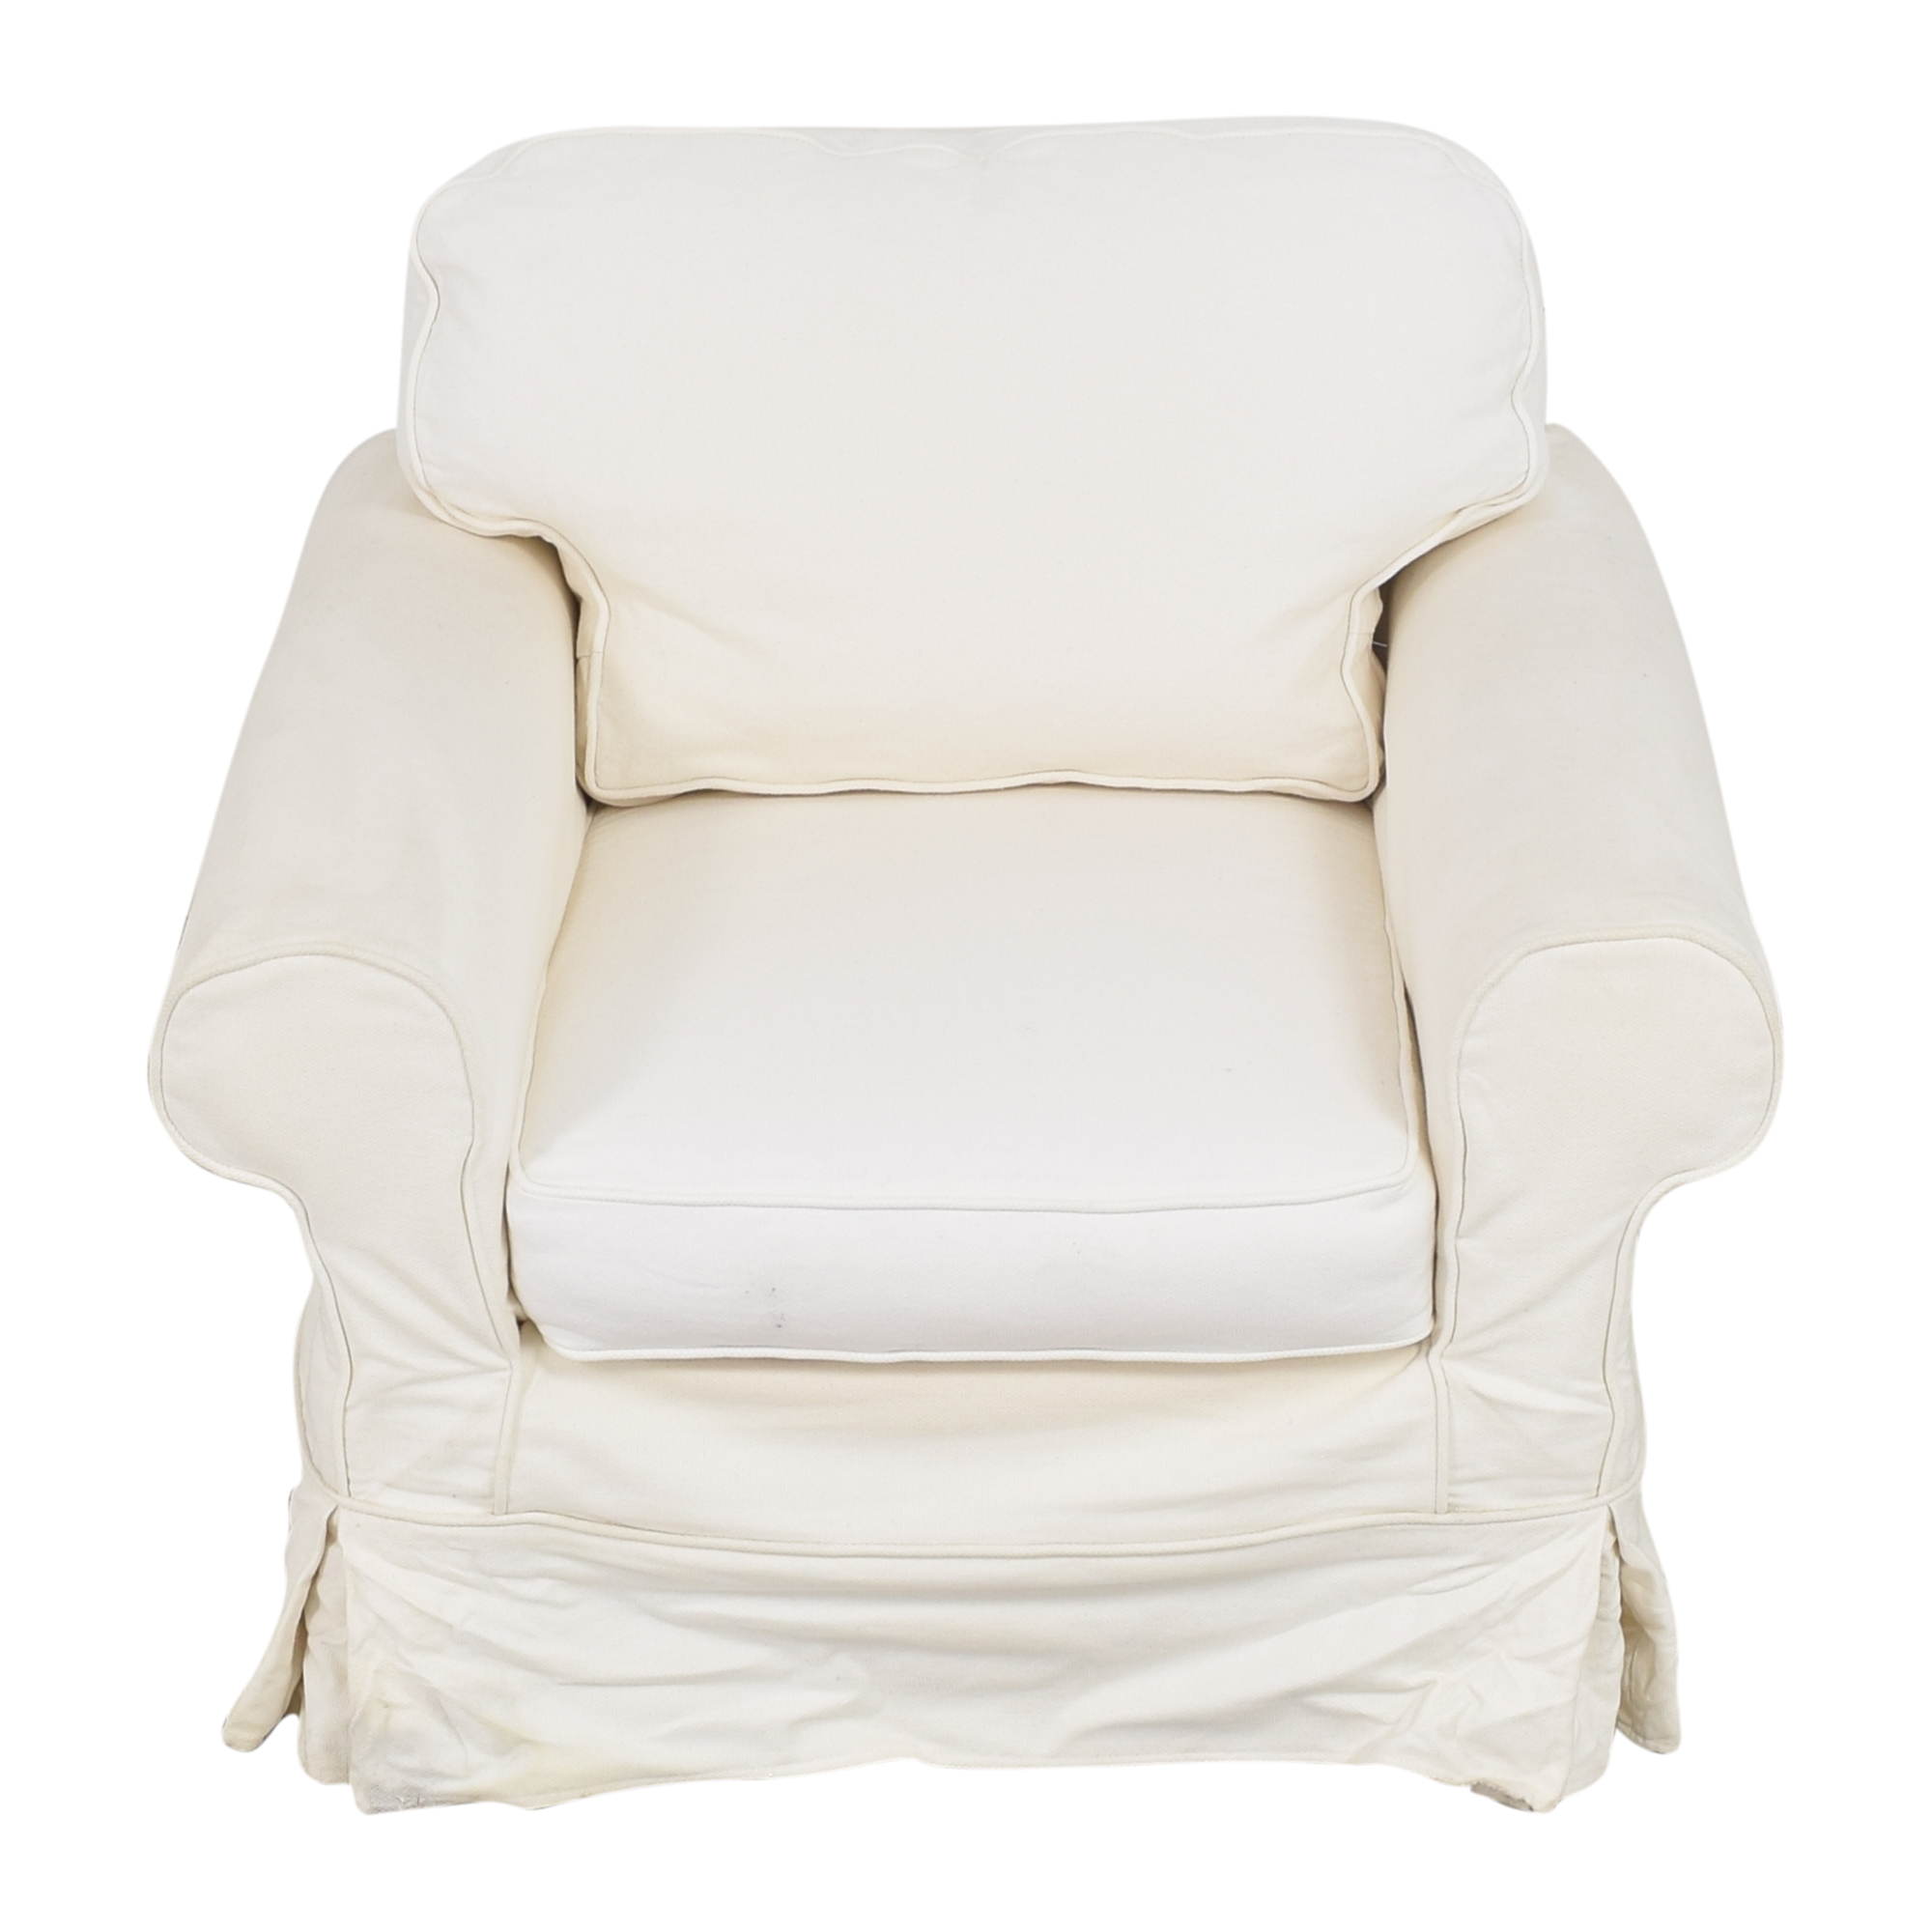 Mitchell Gold + Bob Williams Mitchell Gold + Bob Williams Slipcovered Arm Chair discount